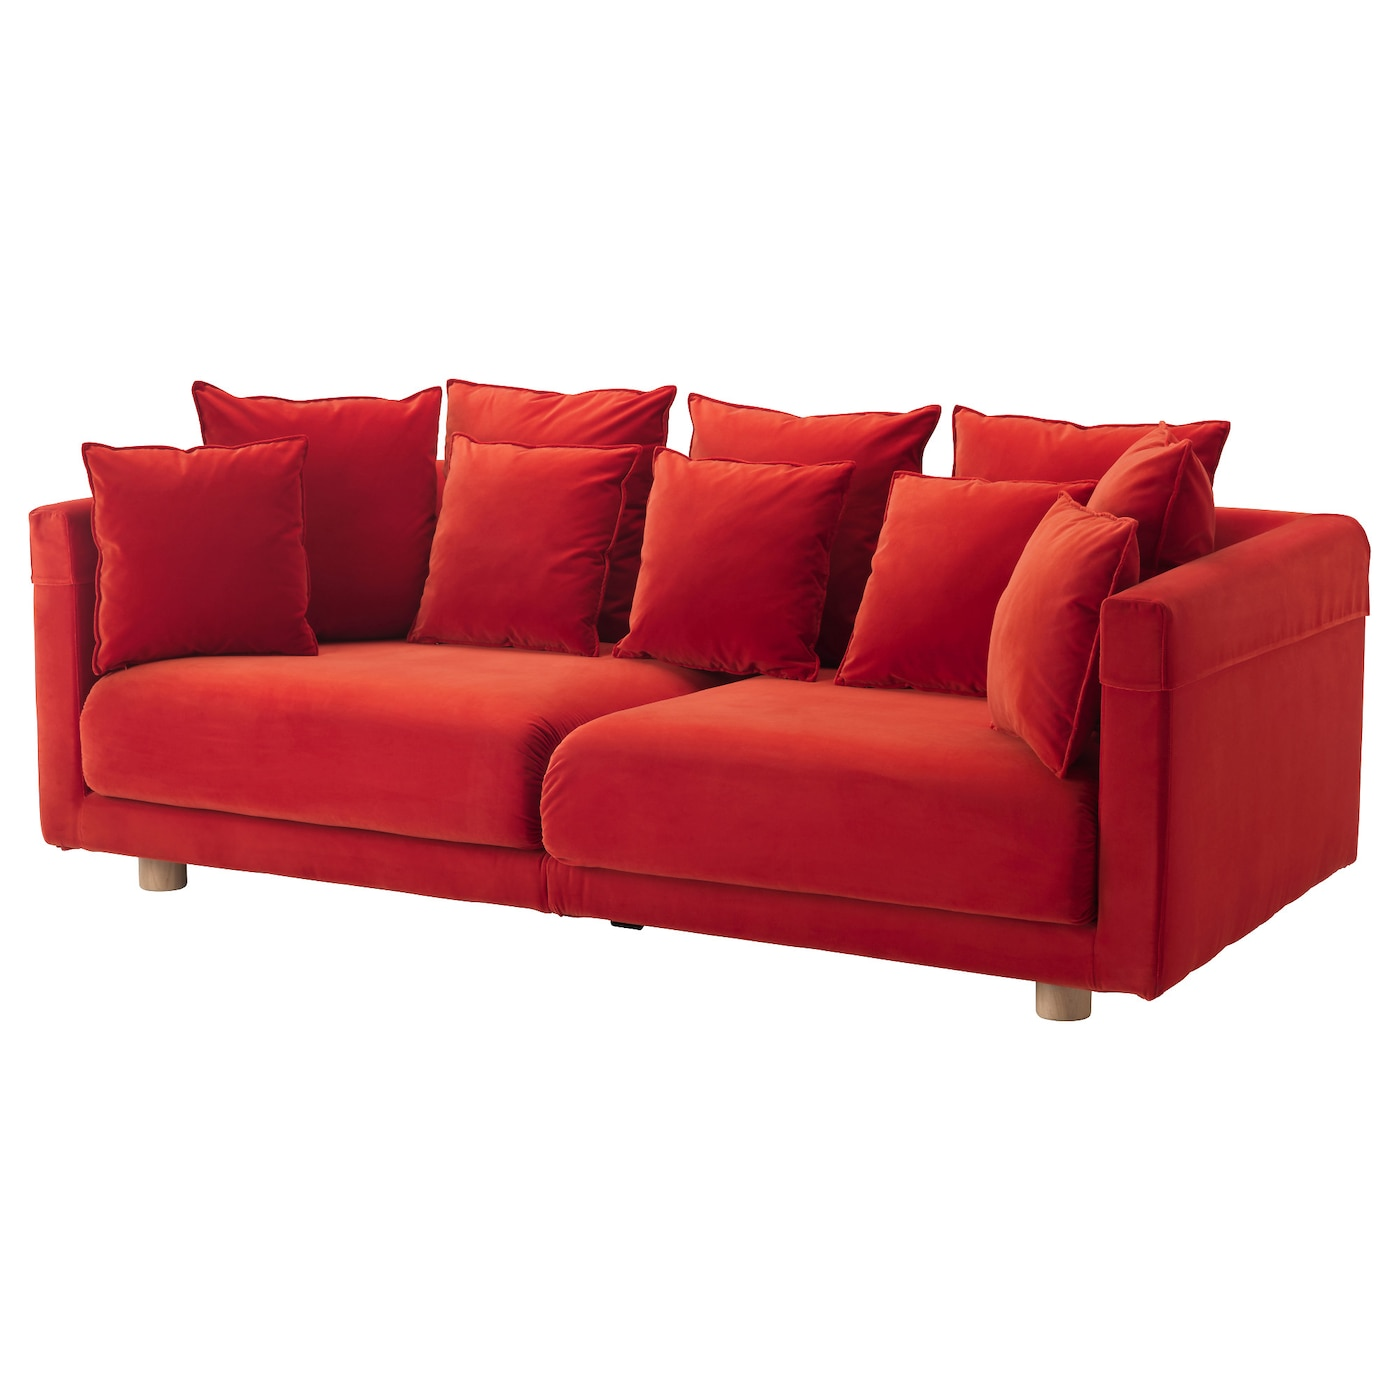 Stockholm 2017 pouffe sandbacka orange 50x50 cm ikea Sofa loveseat